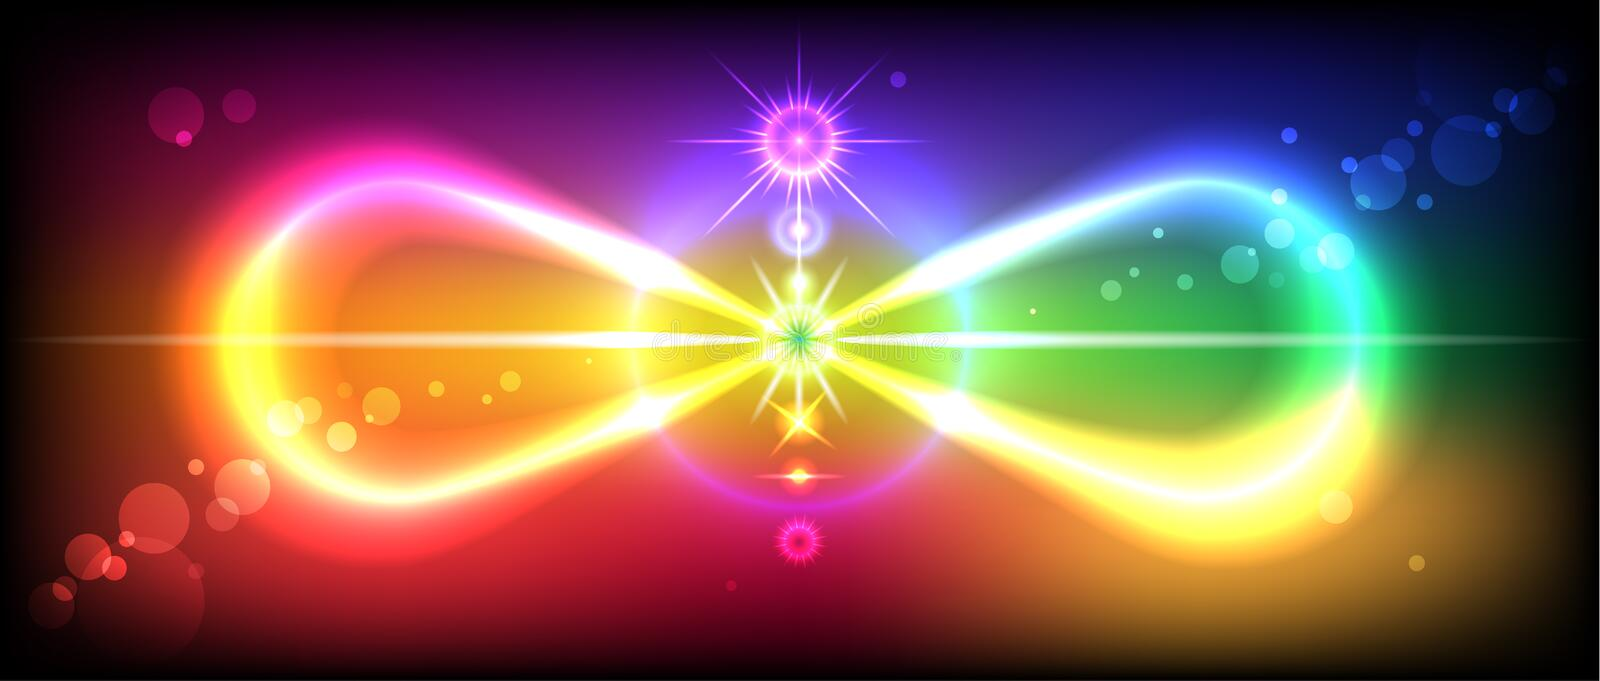 Infinity. Symbol or sign of infinity with the image of the chakras on the beautiful, colorful background vector illustration